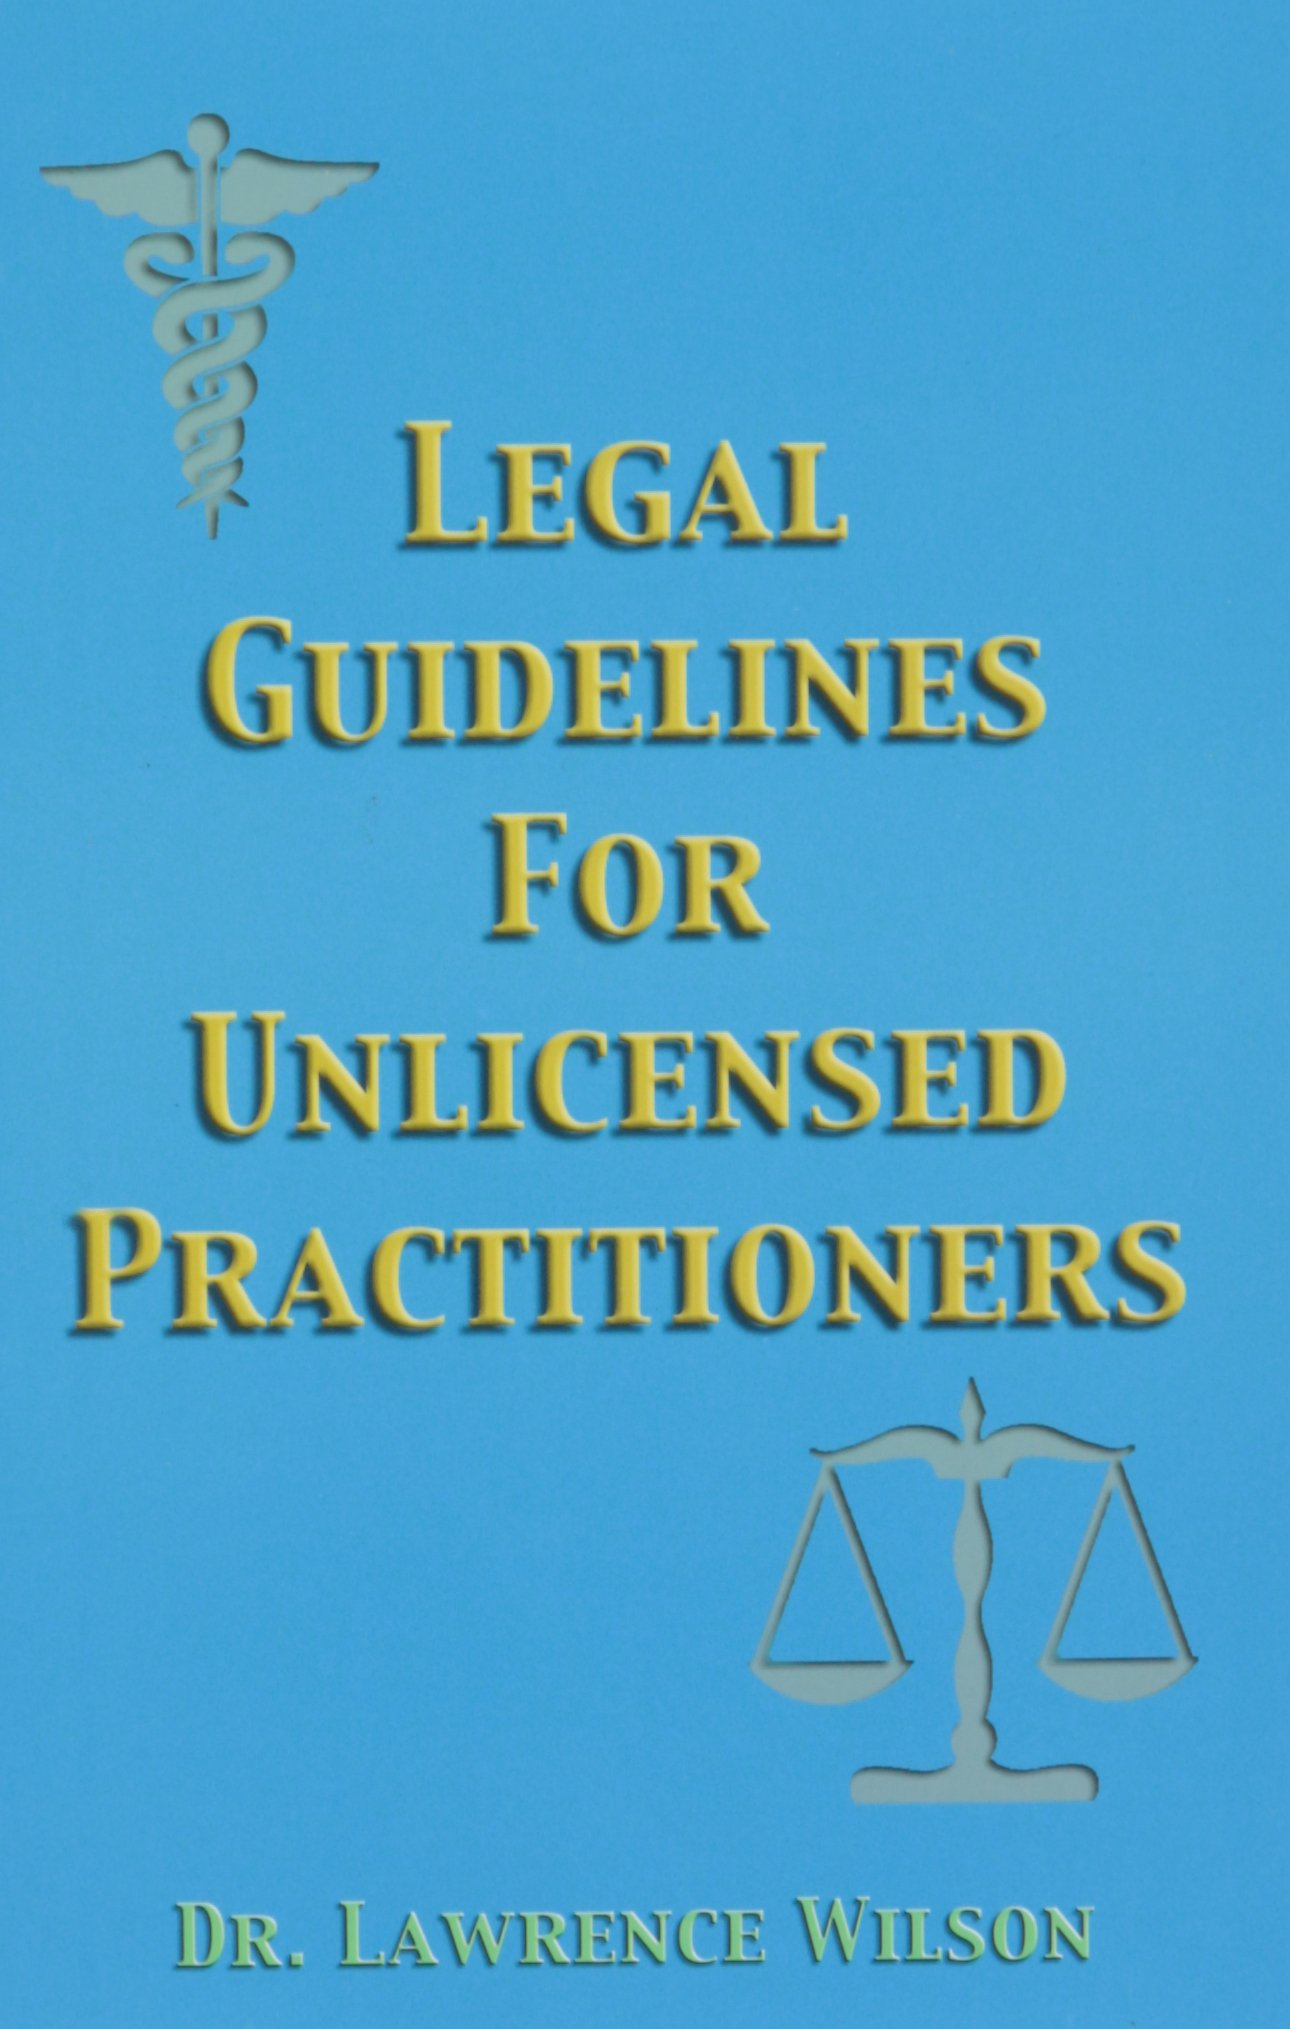 Buy Legal Guidelines For Unlicensed Practitioners